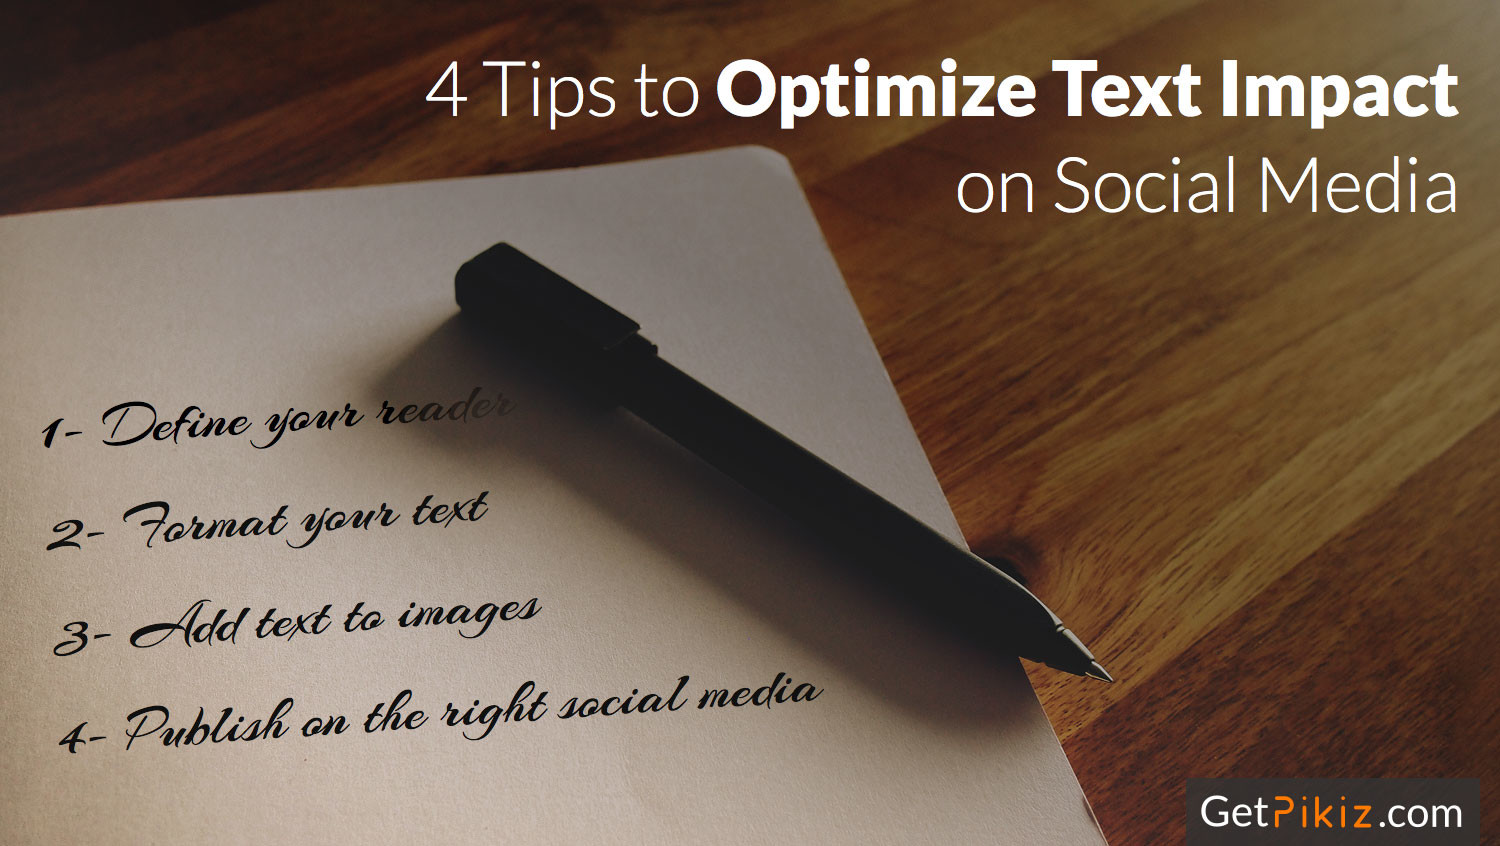 4 Tips to Optimize Text Impact on Social Media